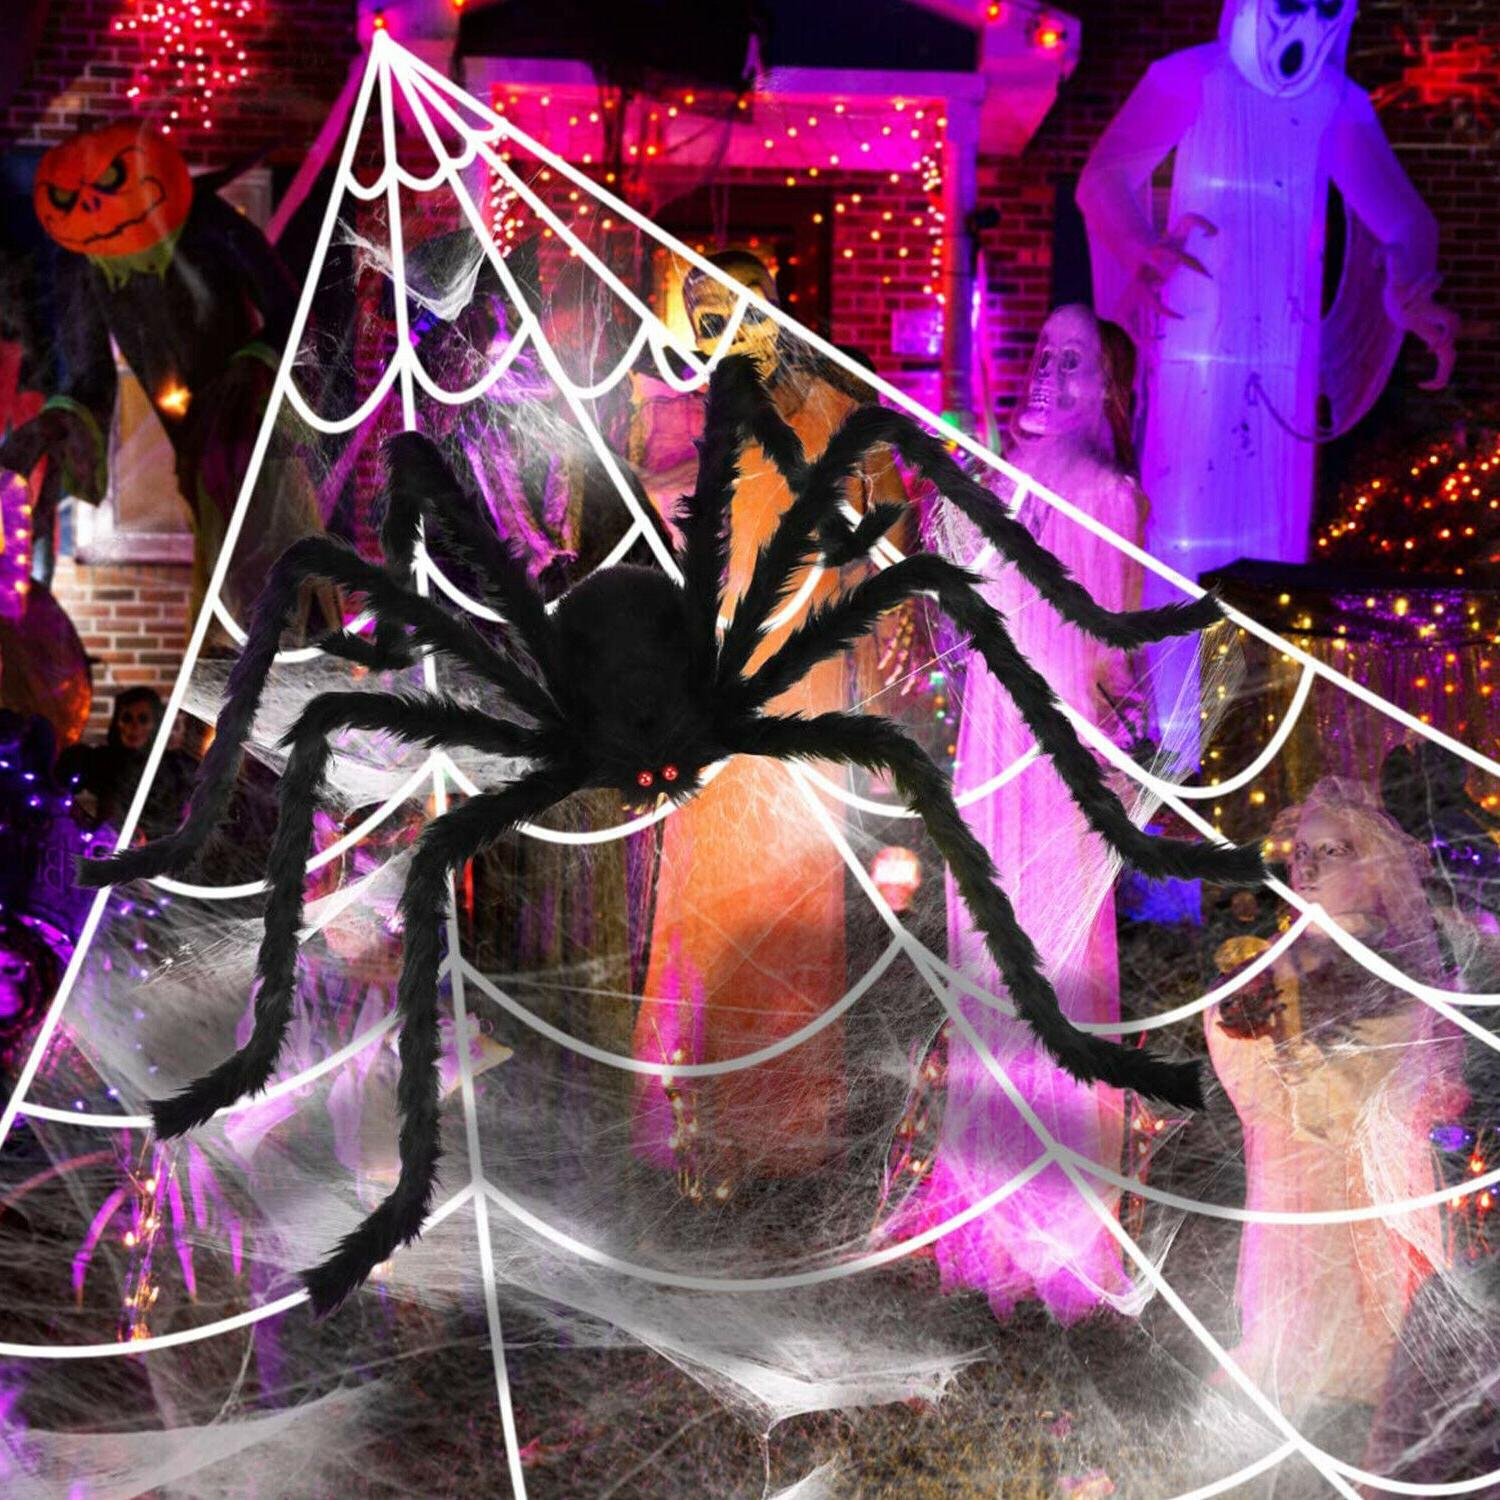 Halloween Yard 23*18 ft Giant Web Set / 29.5in Large Spider